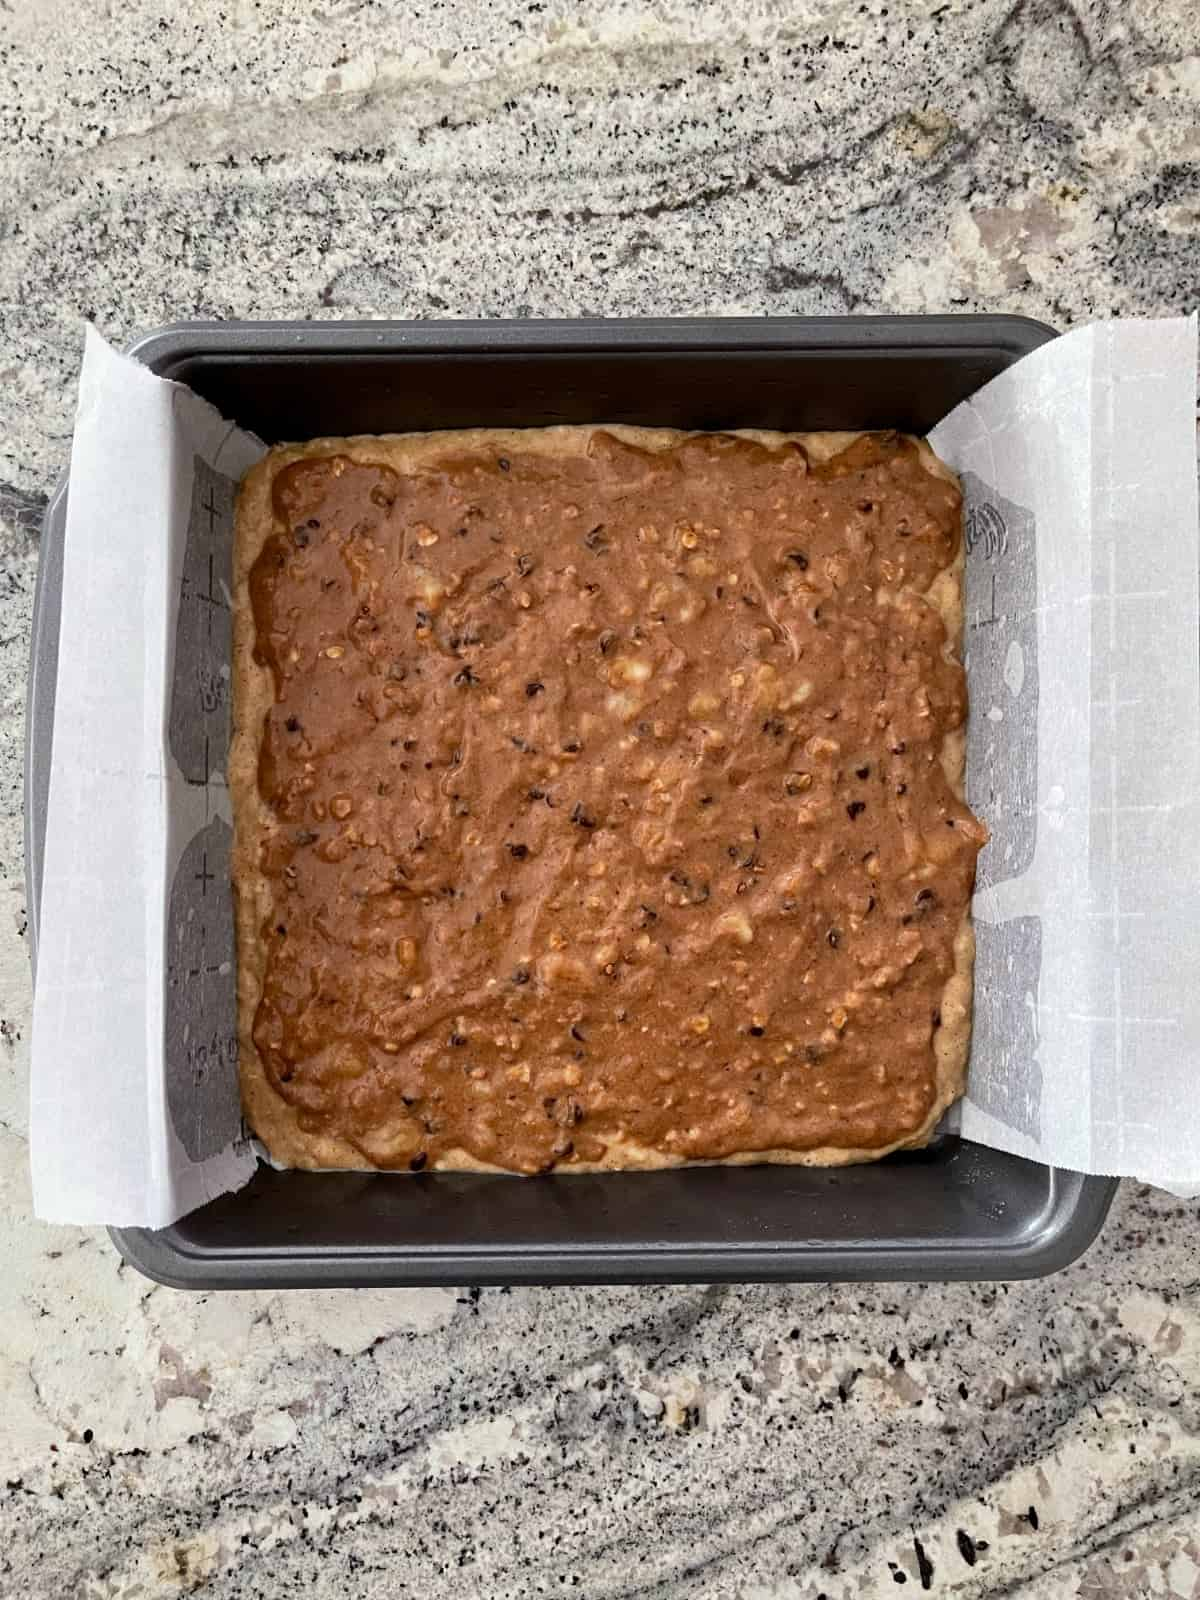 Unbaked banana bread brownies in parchment lined baking pan on granite counter.